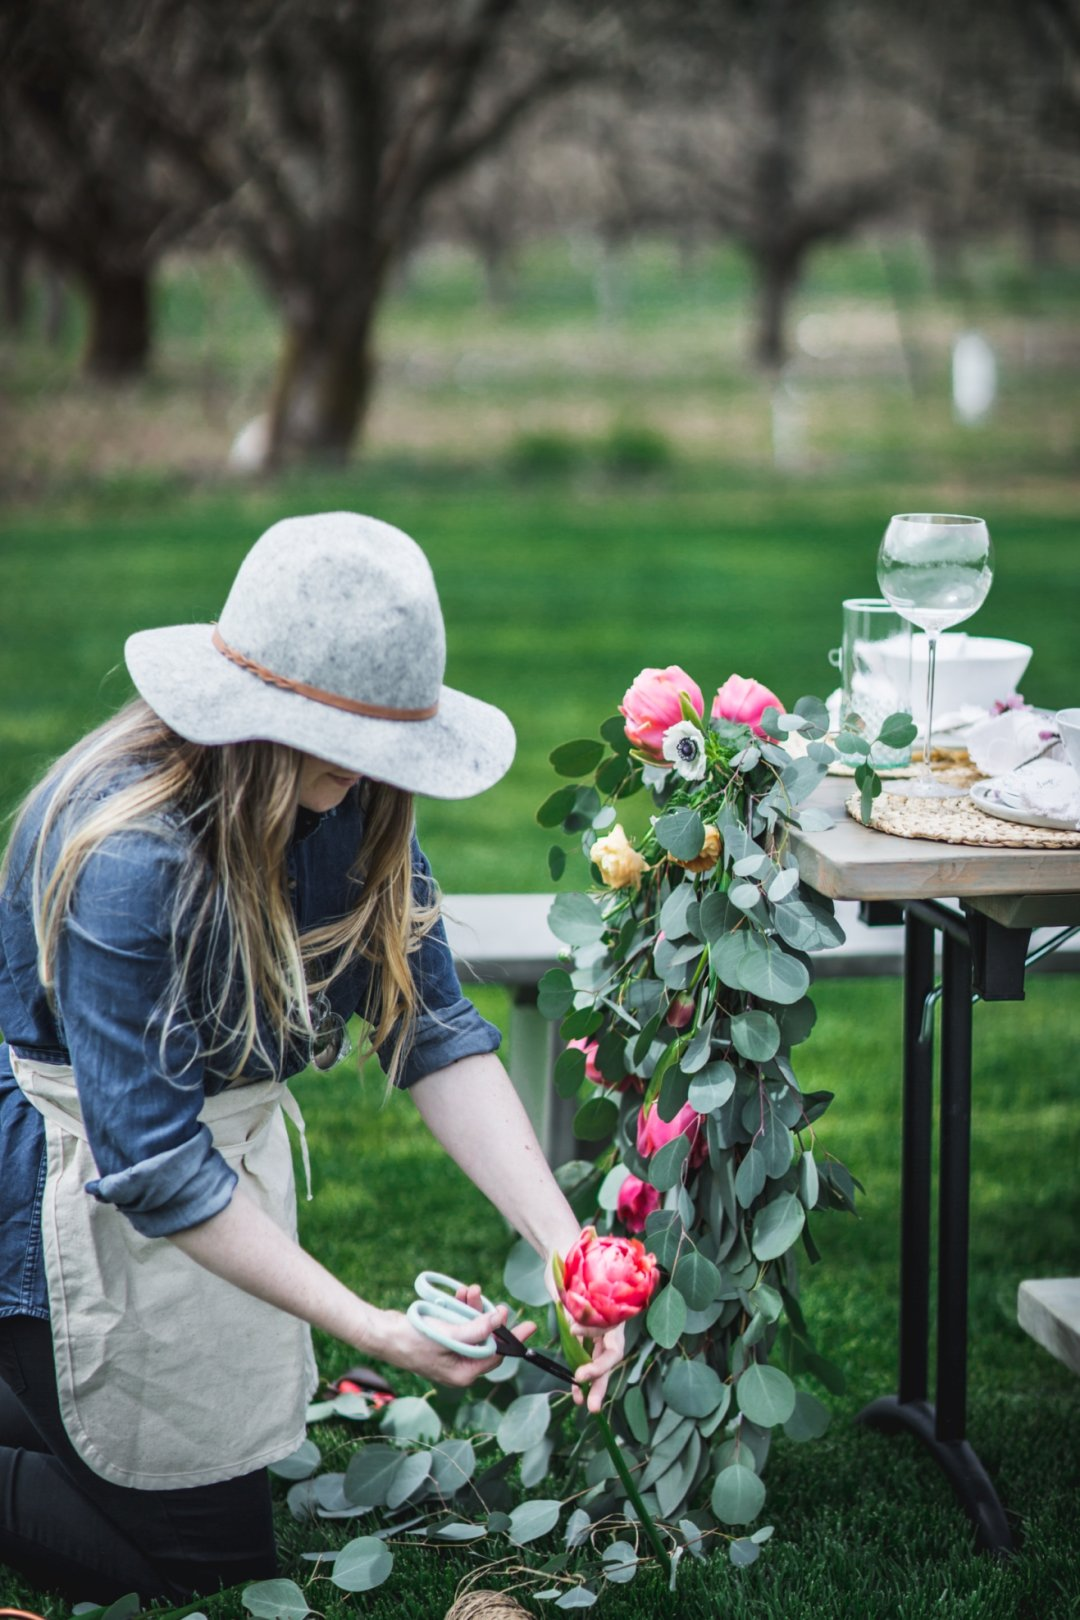 Woman trimming centerpiece wreath and flowers